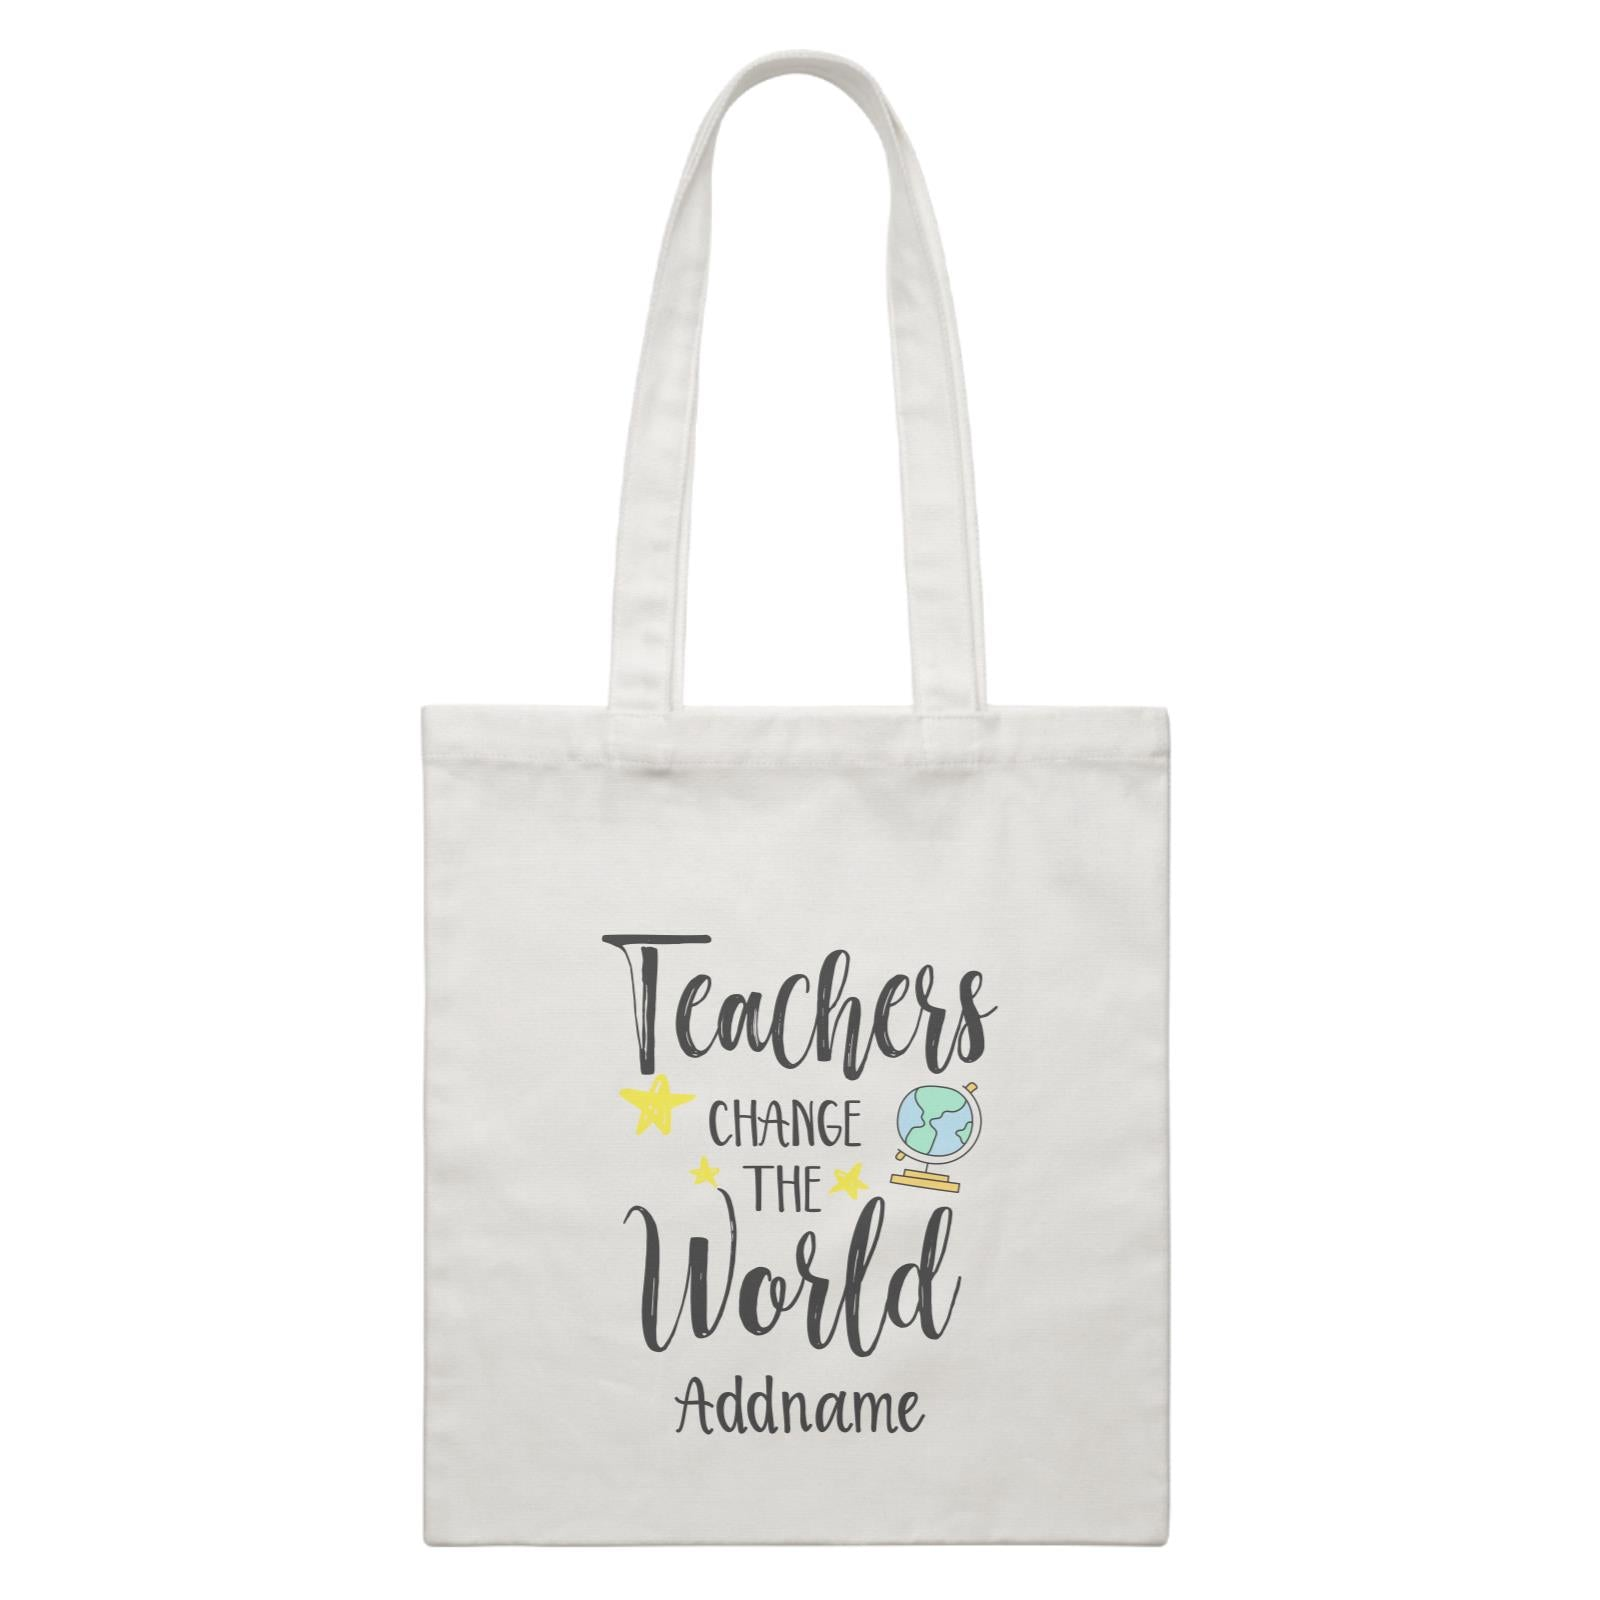 Teacher Quotes Teachers Change The World Addname White Canvas Bag